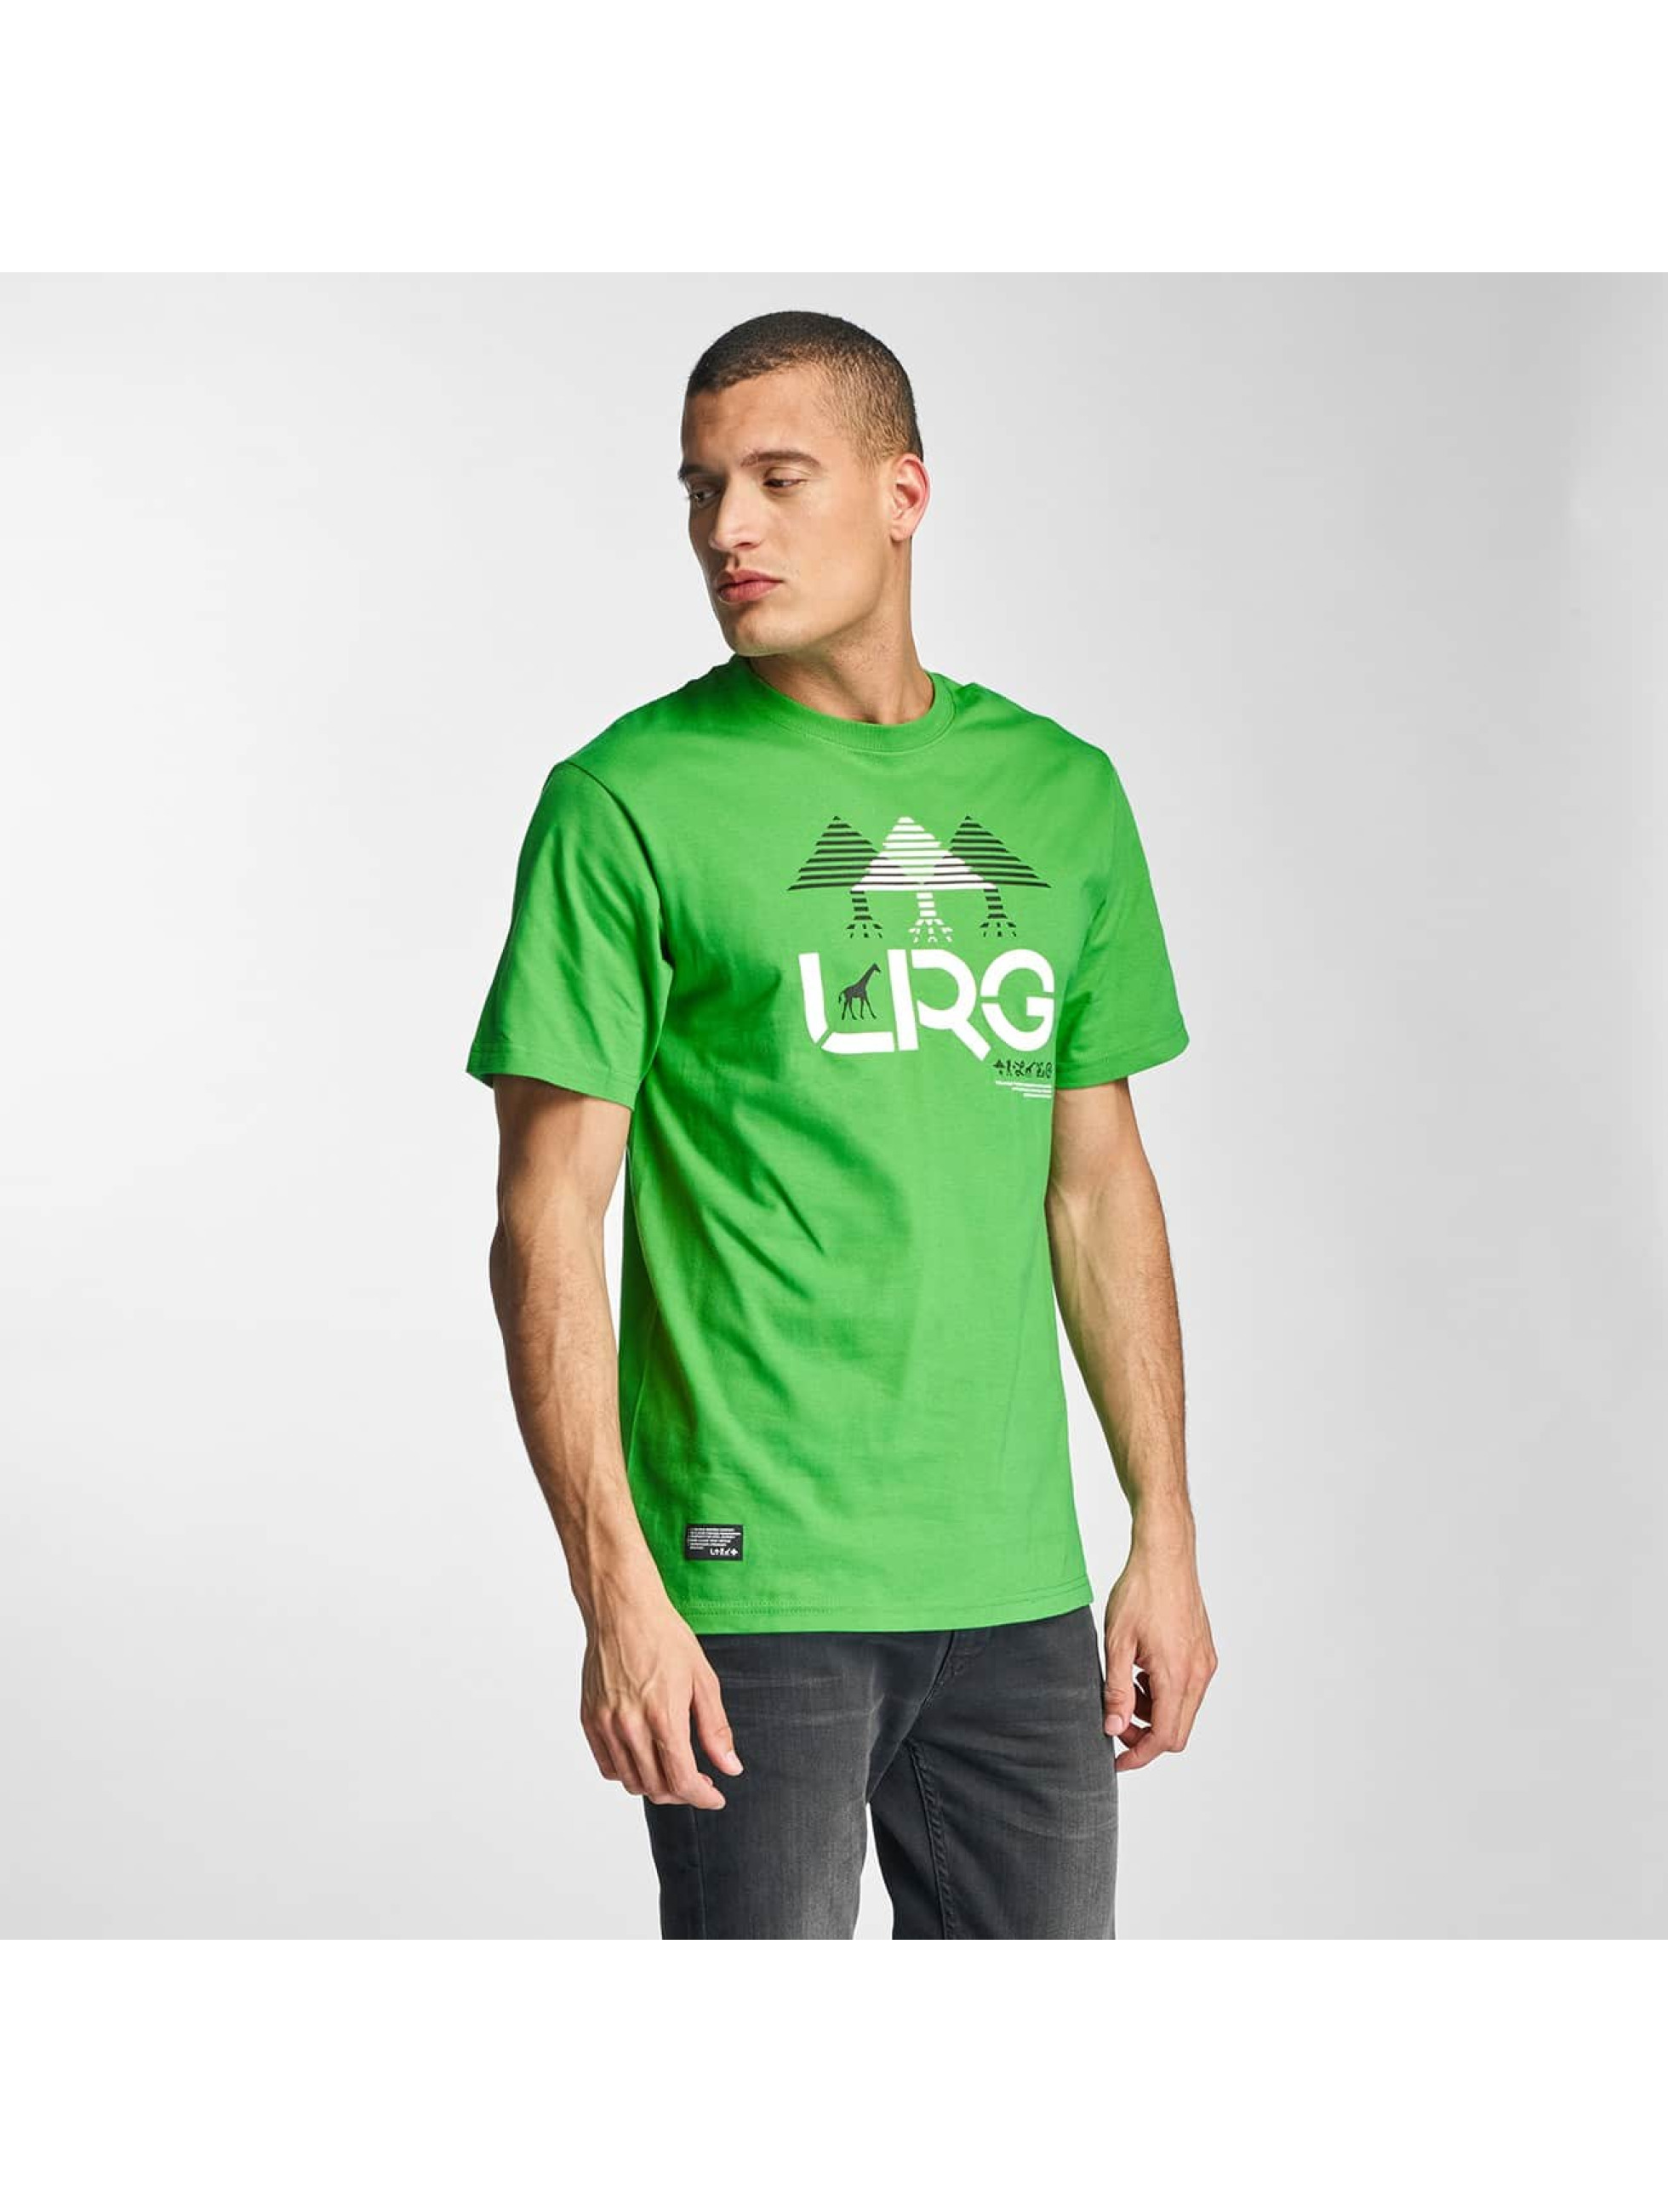 LRG T-Shirt Illusion grün